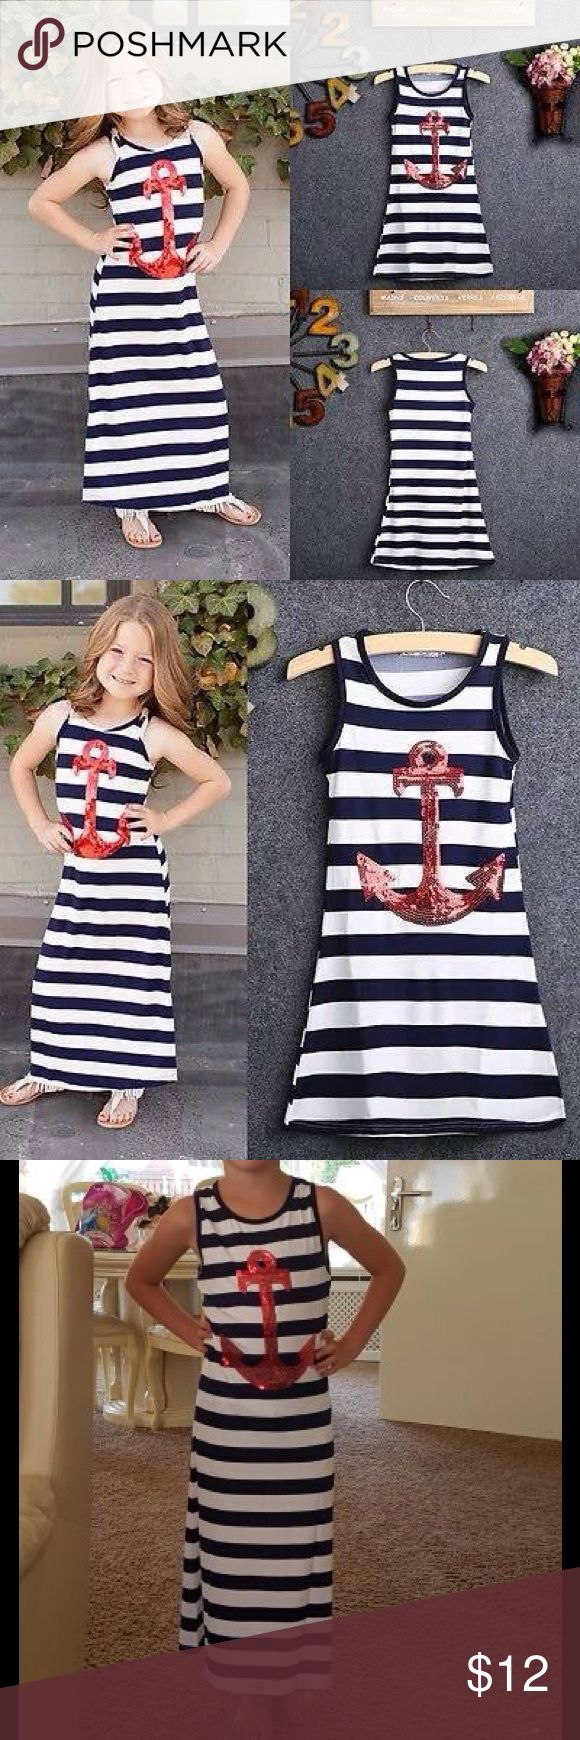 Anchors Away! Sequin anchor dress. Deep navy stripes w/white and a red sequin anchor.  Tank cut long dress.   Fabric is synthetic, similar to swimsuit fabric, which makes this PERFECT for the beach and summer getaways. Throw it over a damp swimsuit to get to dinner NO PROBLEM!   Just ONE available, don't miss out!  Boutique brand. VOGUE Fashions Dresses Casual